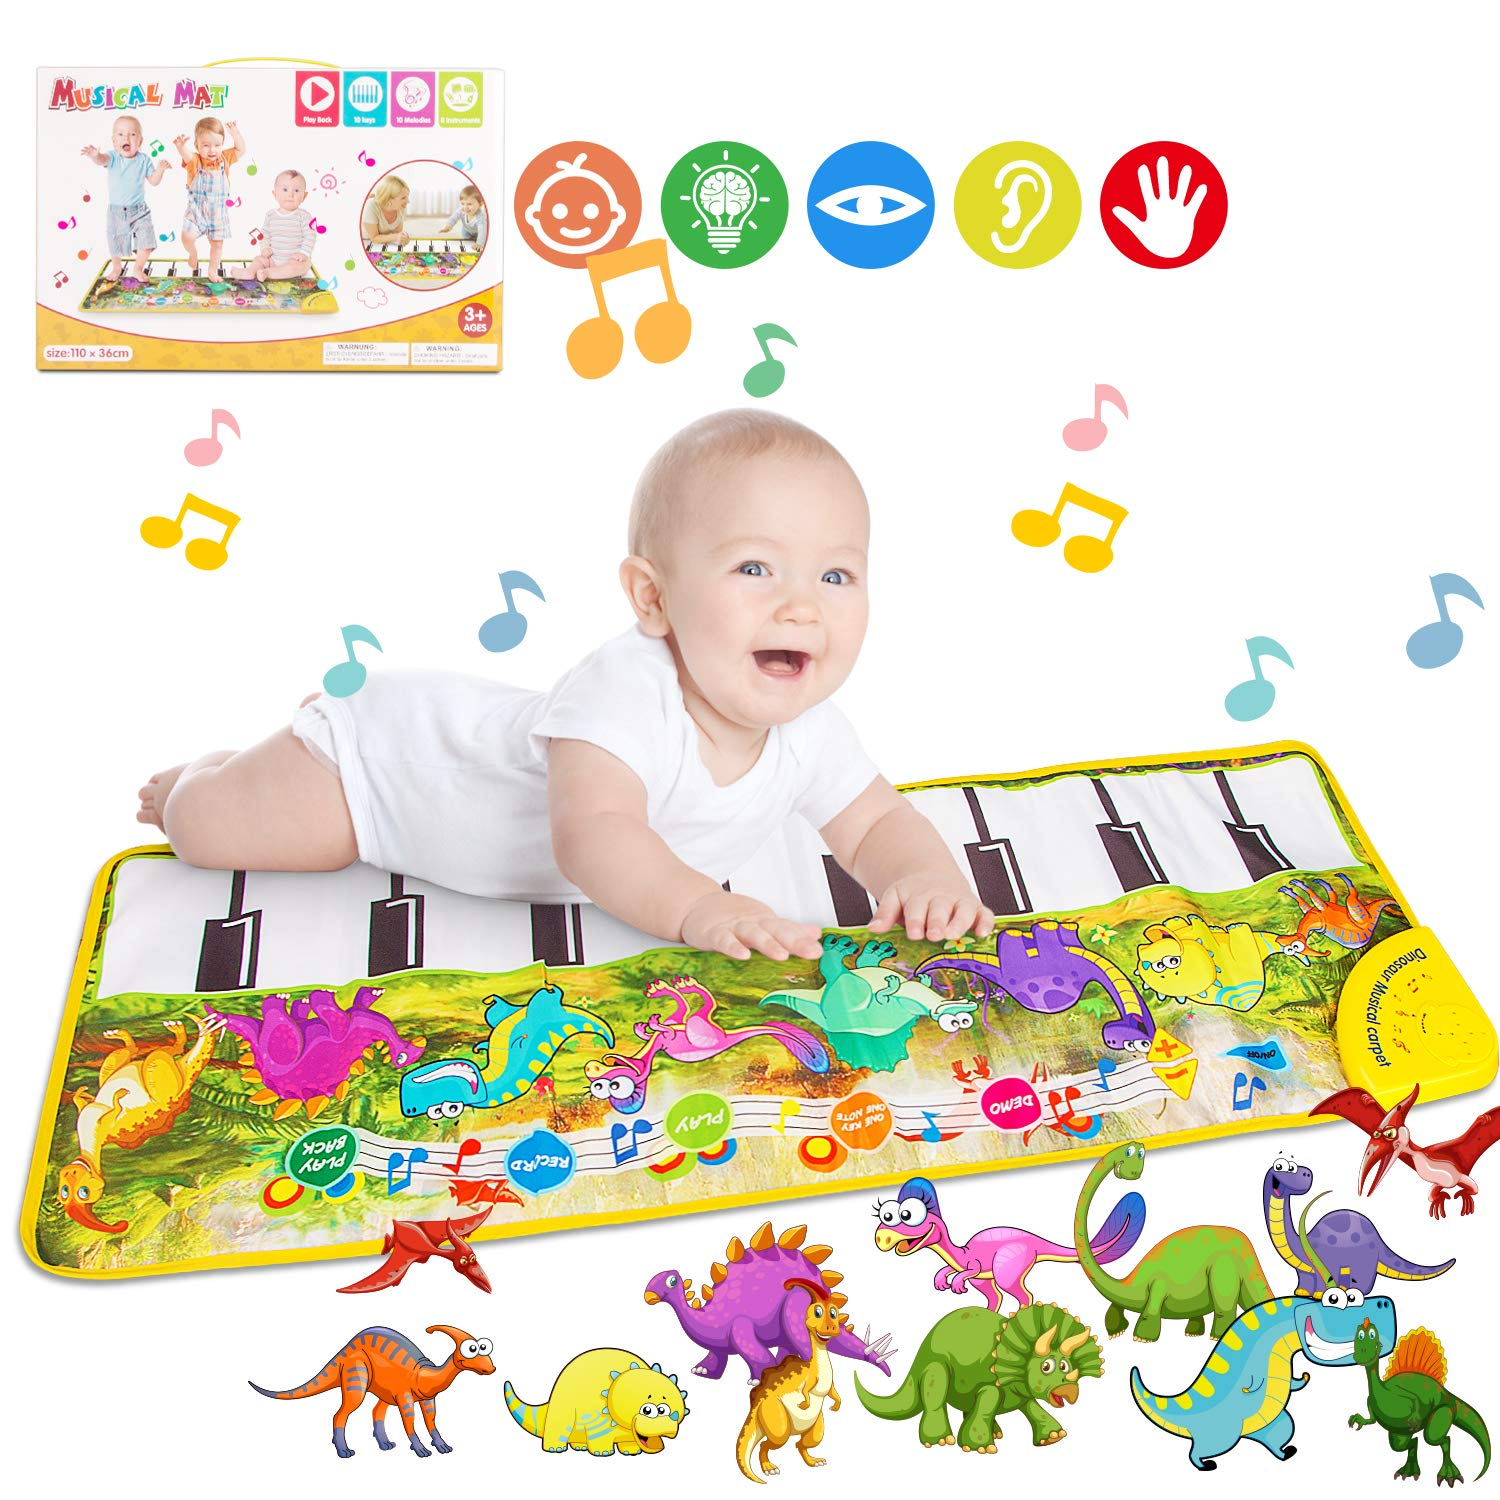 Piano Mat, Tencoz Musical Piano Mat with 8 Dinosaurs Sounds Portable Electronic Educational Musical Blanket Dinosaur Toys Gifts for Kids Toddler Girls Boys by Tencoz (Image #1)